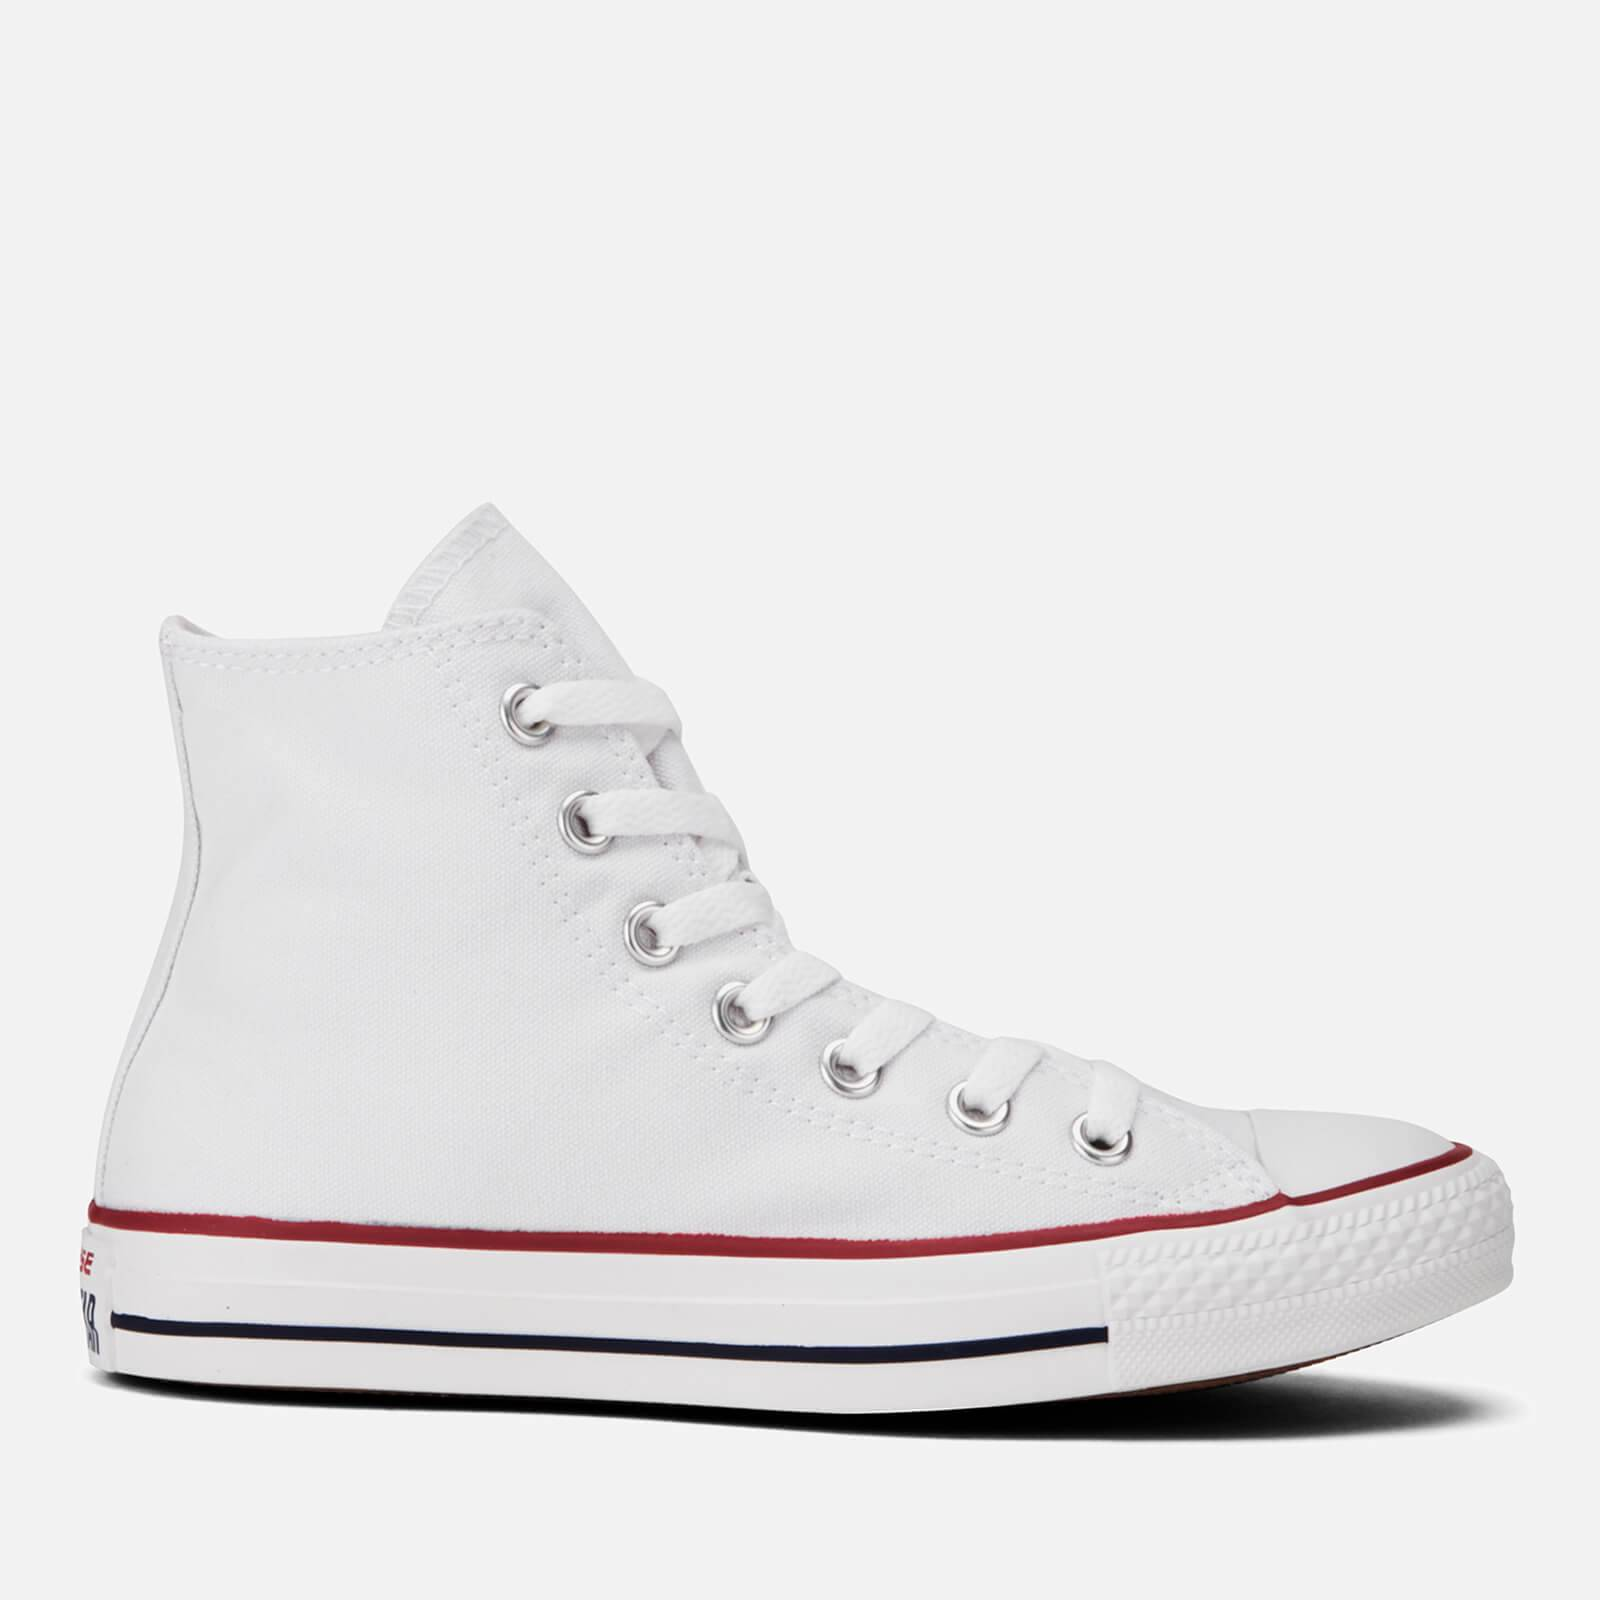 Converse Chuck Taylor All Star Hi-Top Trainers - Optical White - UK 3